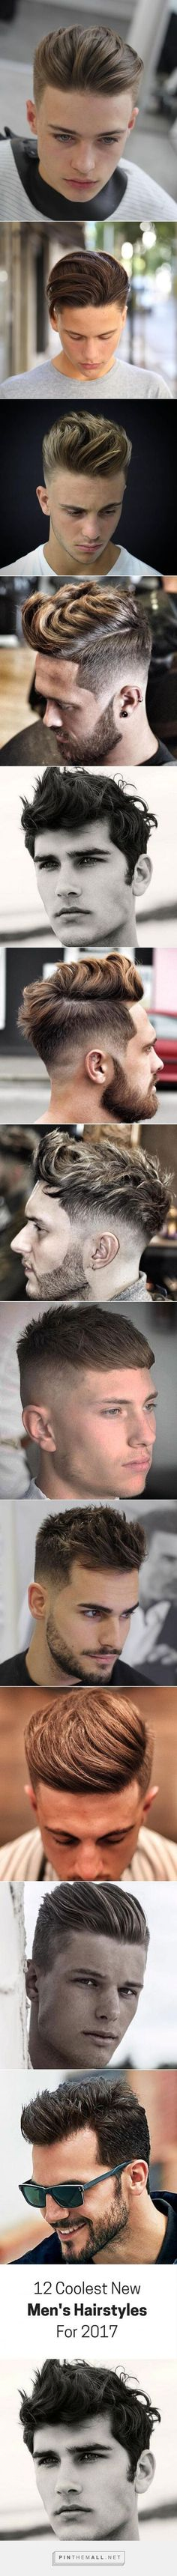 Cool Mens Hairstyles 2018 #hair #hairstyles #Coolmen'shairstyles